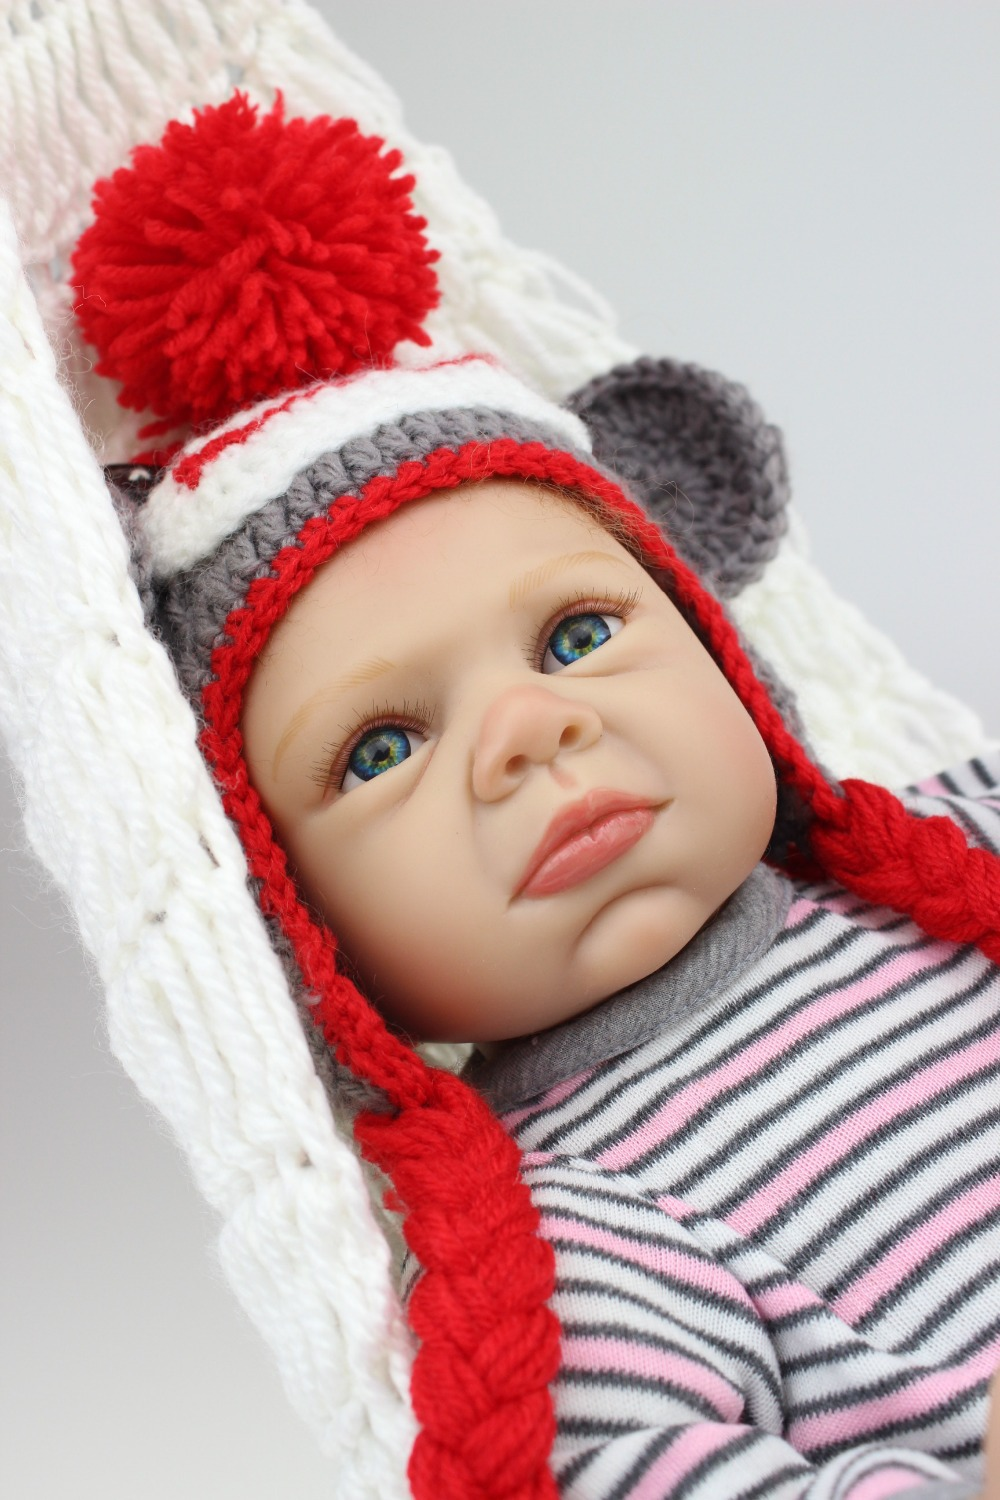 NPK 50cm soft Silicone reborn doll baby doll reborn forgirls gift bebe alive bonecas reborn de silicone inteiro kids toys-in Dolls from Toys & Hobbies    1